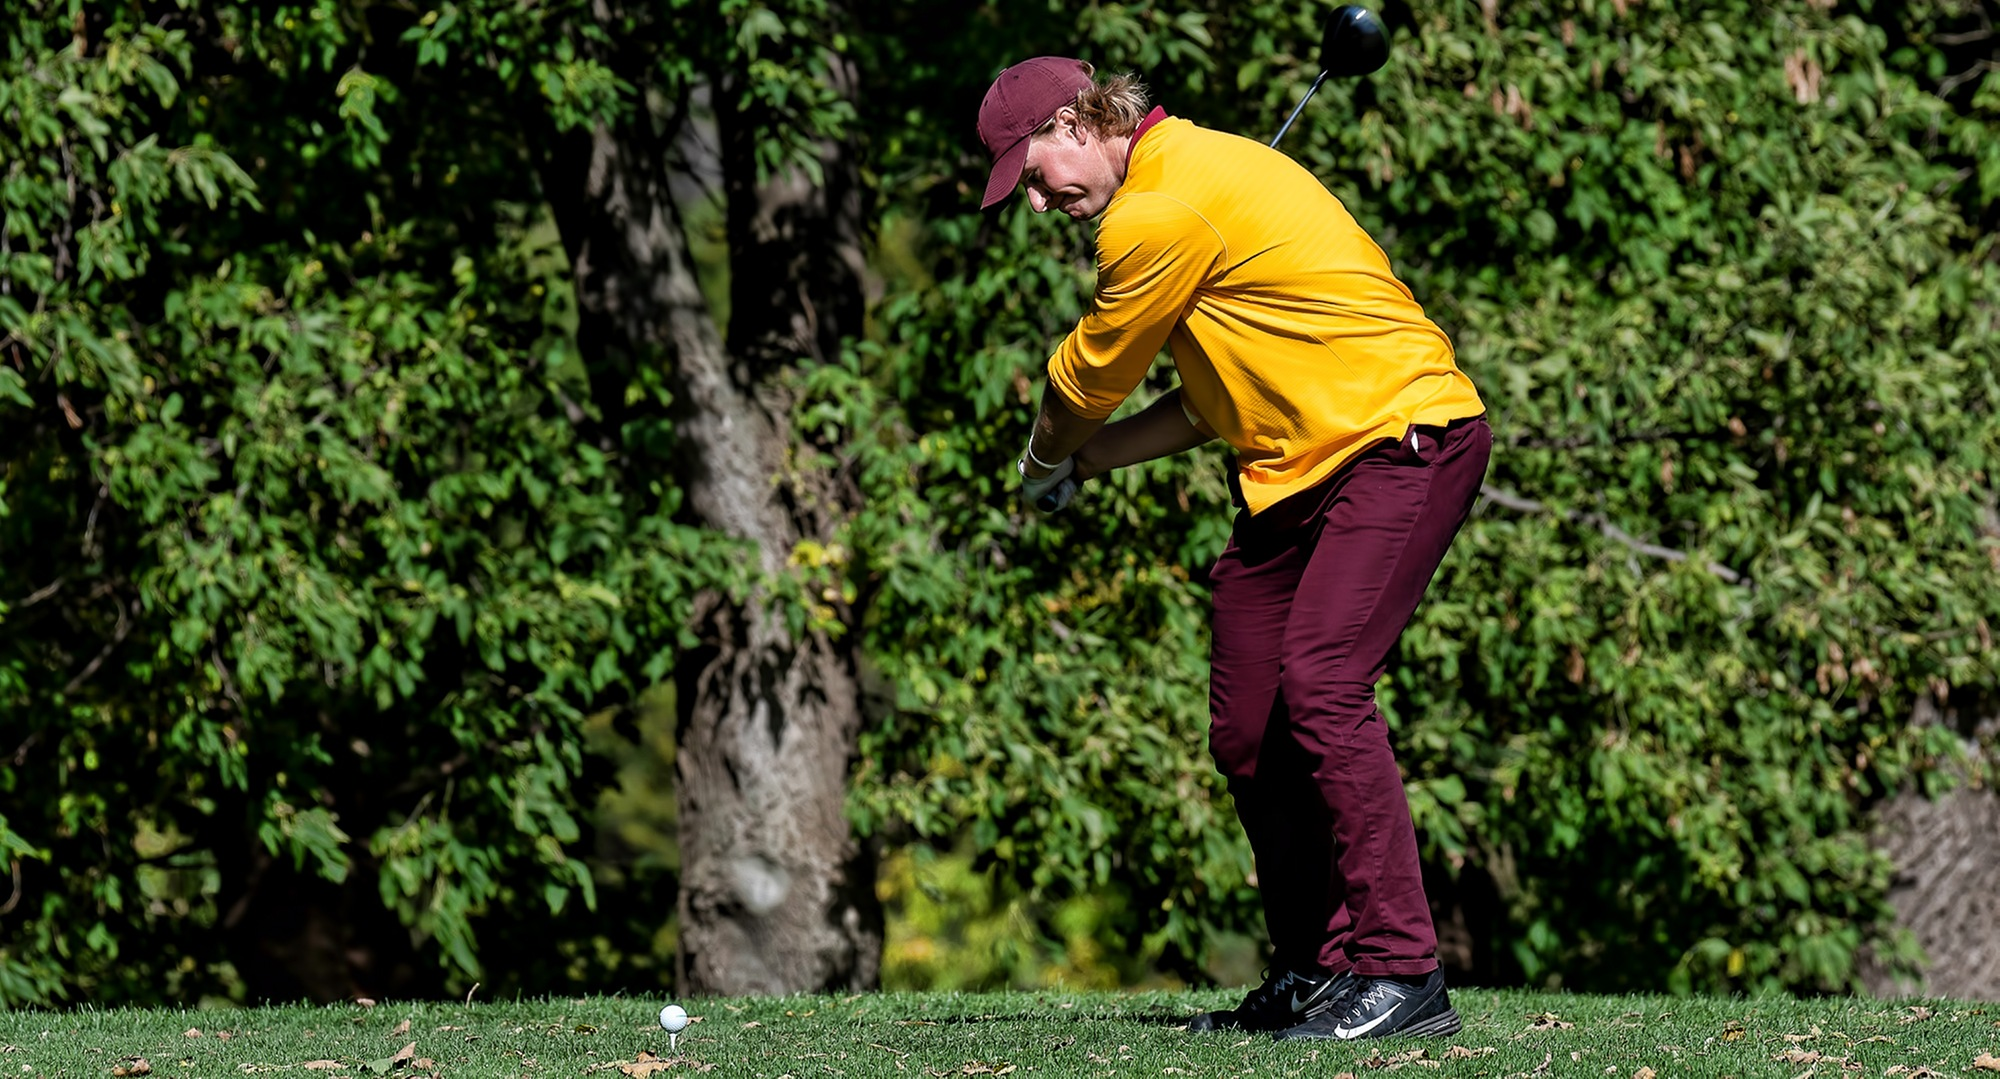 Senior Gage Stromme tees off during the first round at the MIAC Championship Meet. He is tied for the lead after 18 holes of play.